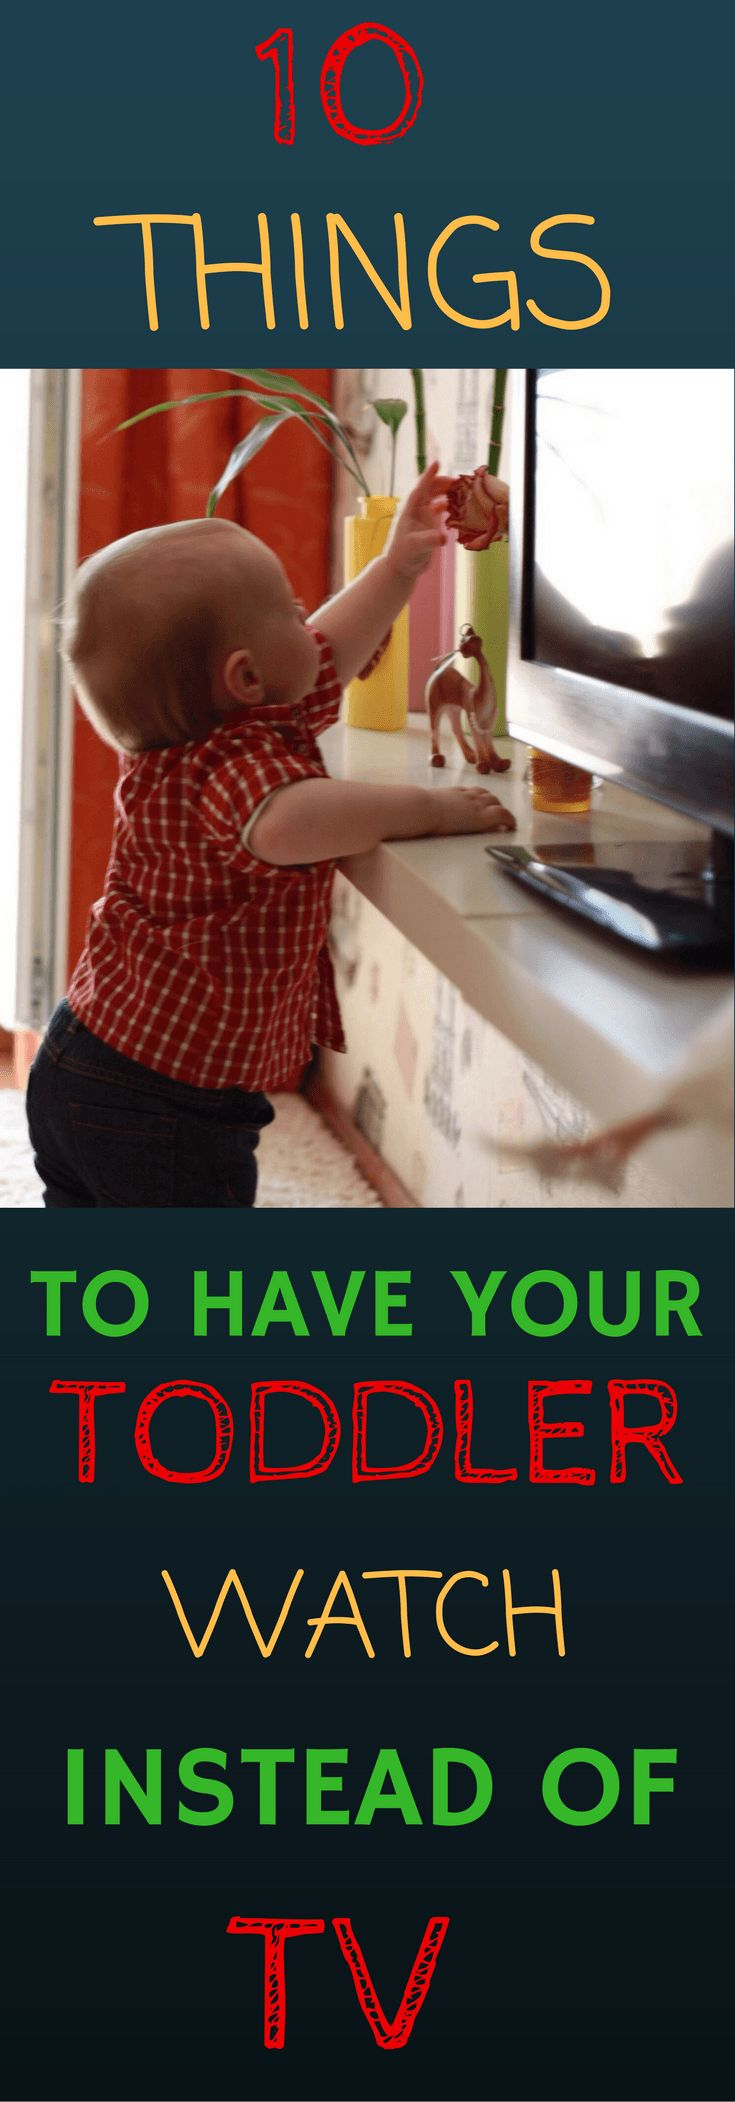 10 THINGS TO HAVE YOUR TODDLER WATCH INSTEAD OF TV